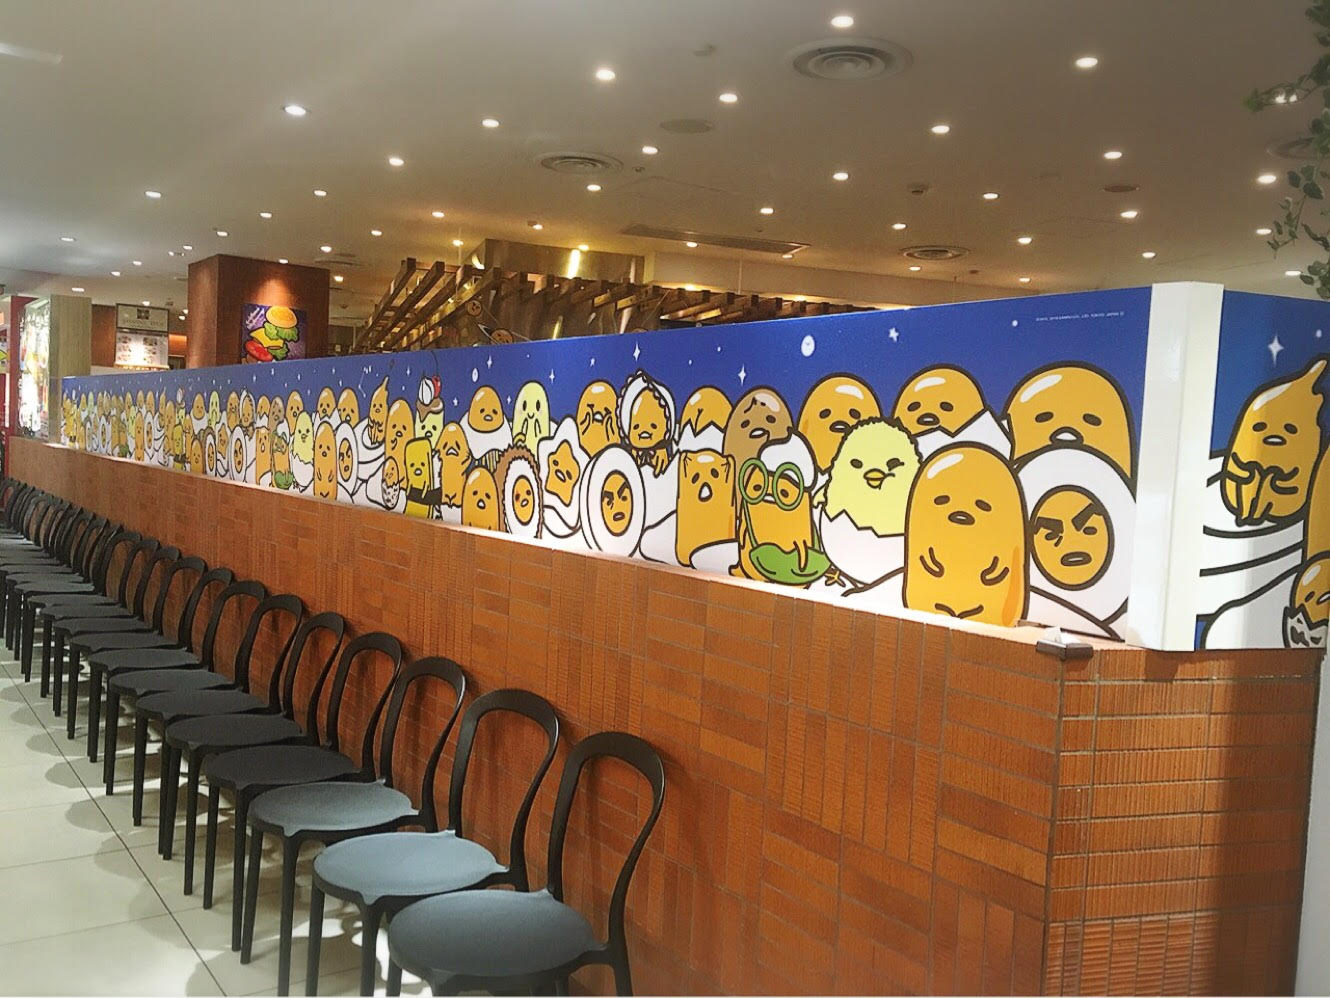 Gudetama 5 Year Anniversary Space Cafe | TokyoTreat: Japanese Candy